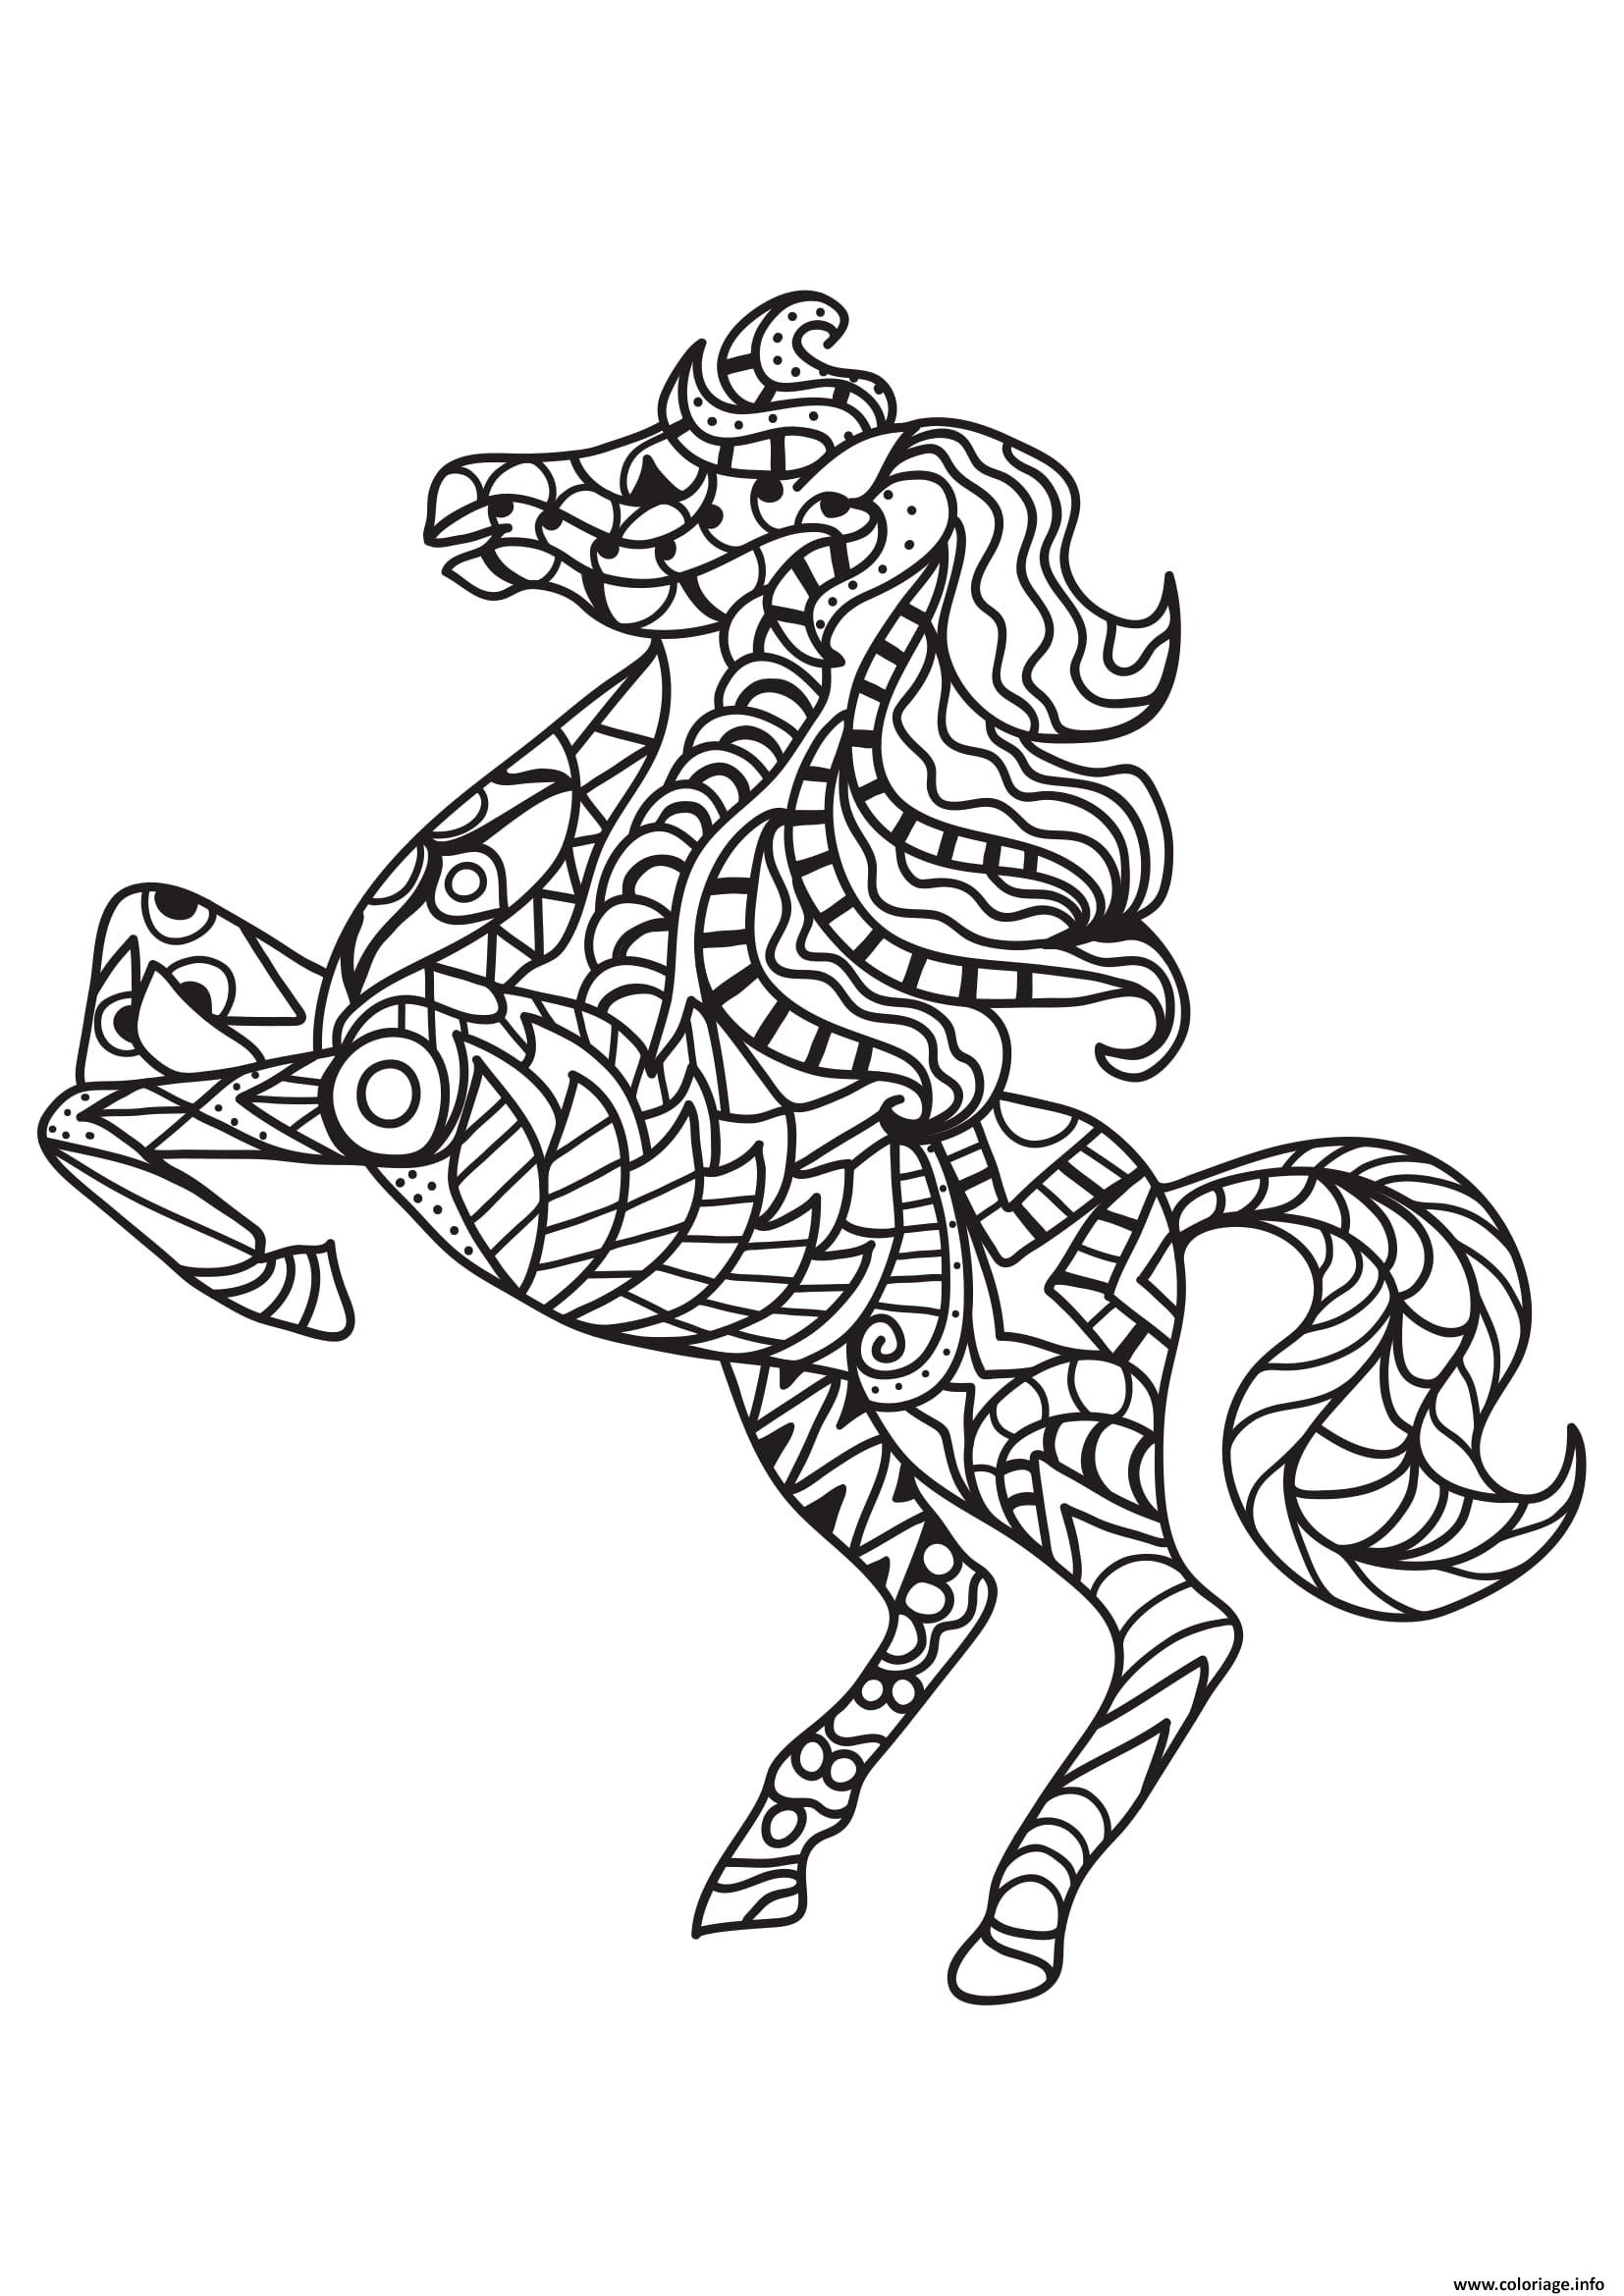 Coloriage Adulte Cheval Antistress 06 Jecolorie Com